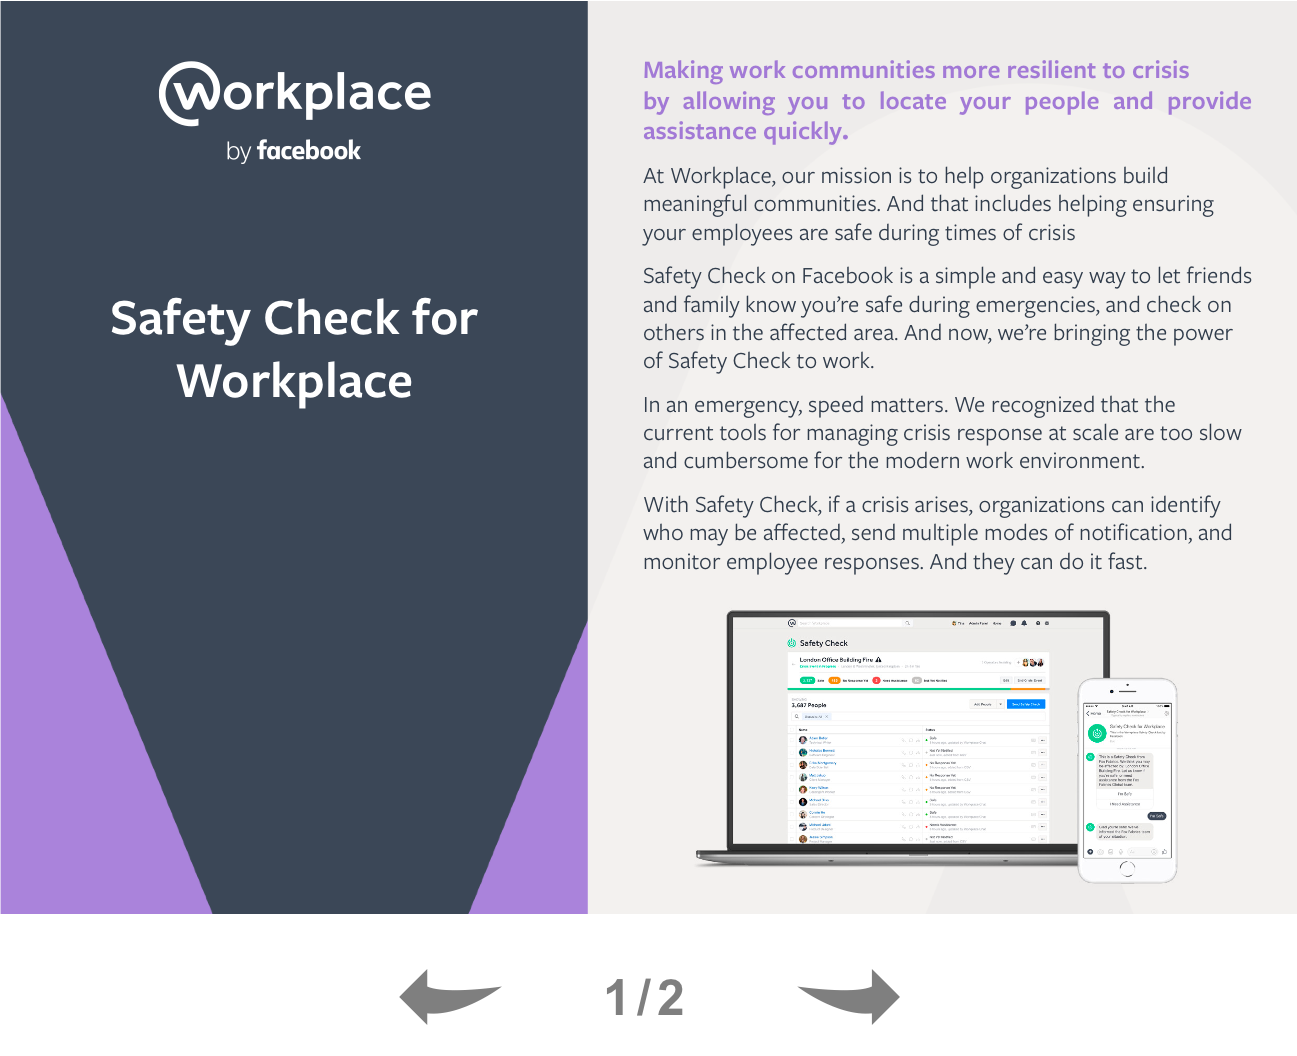 Safety Check for Workplace by Facebook